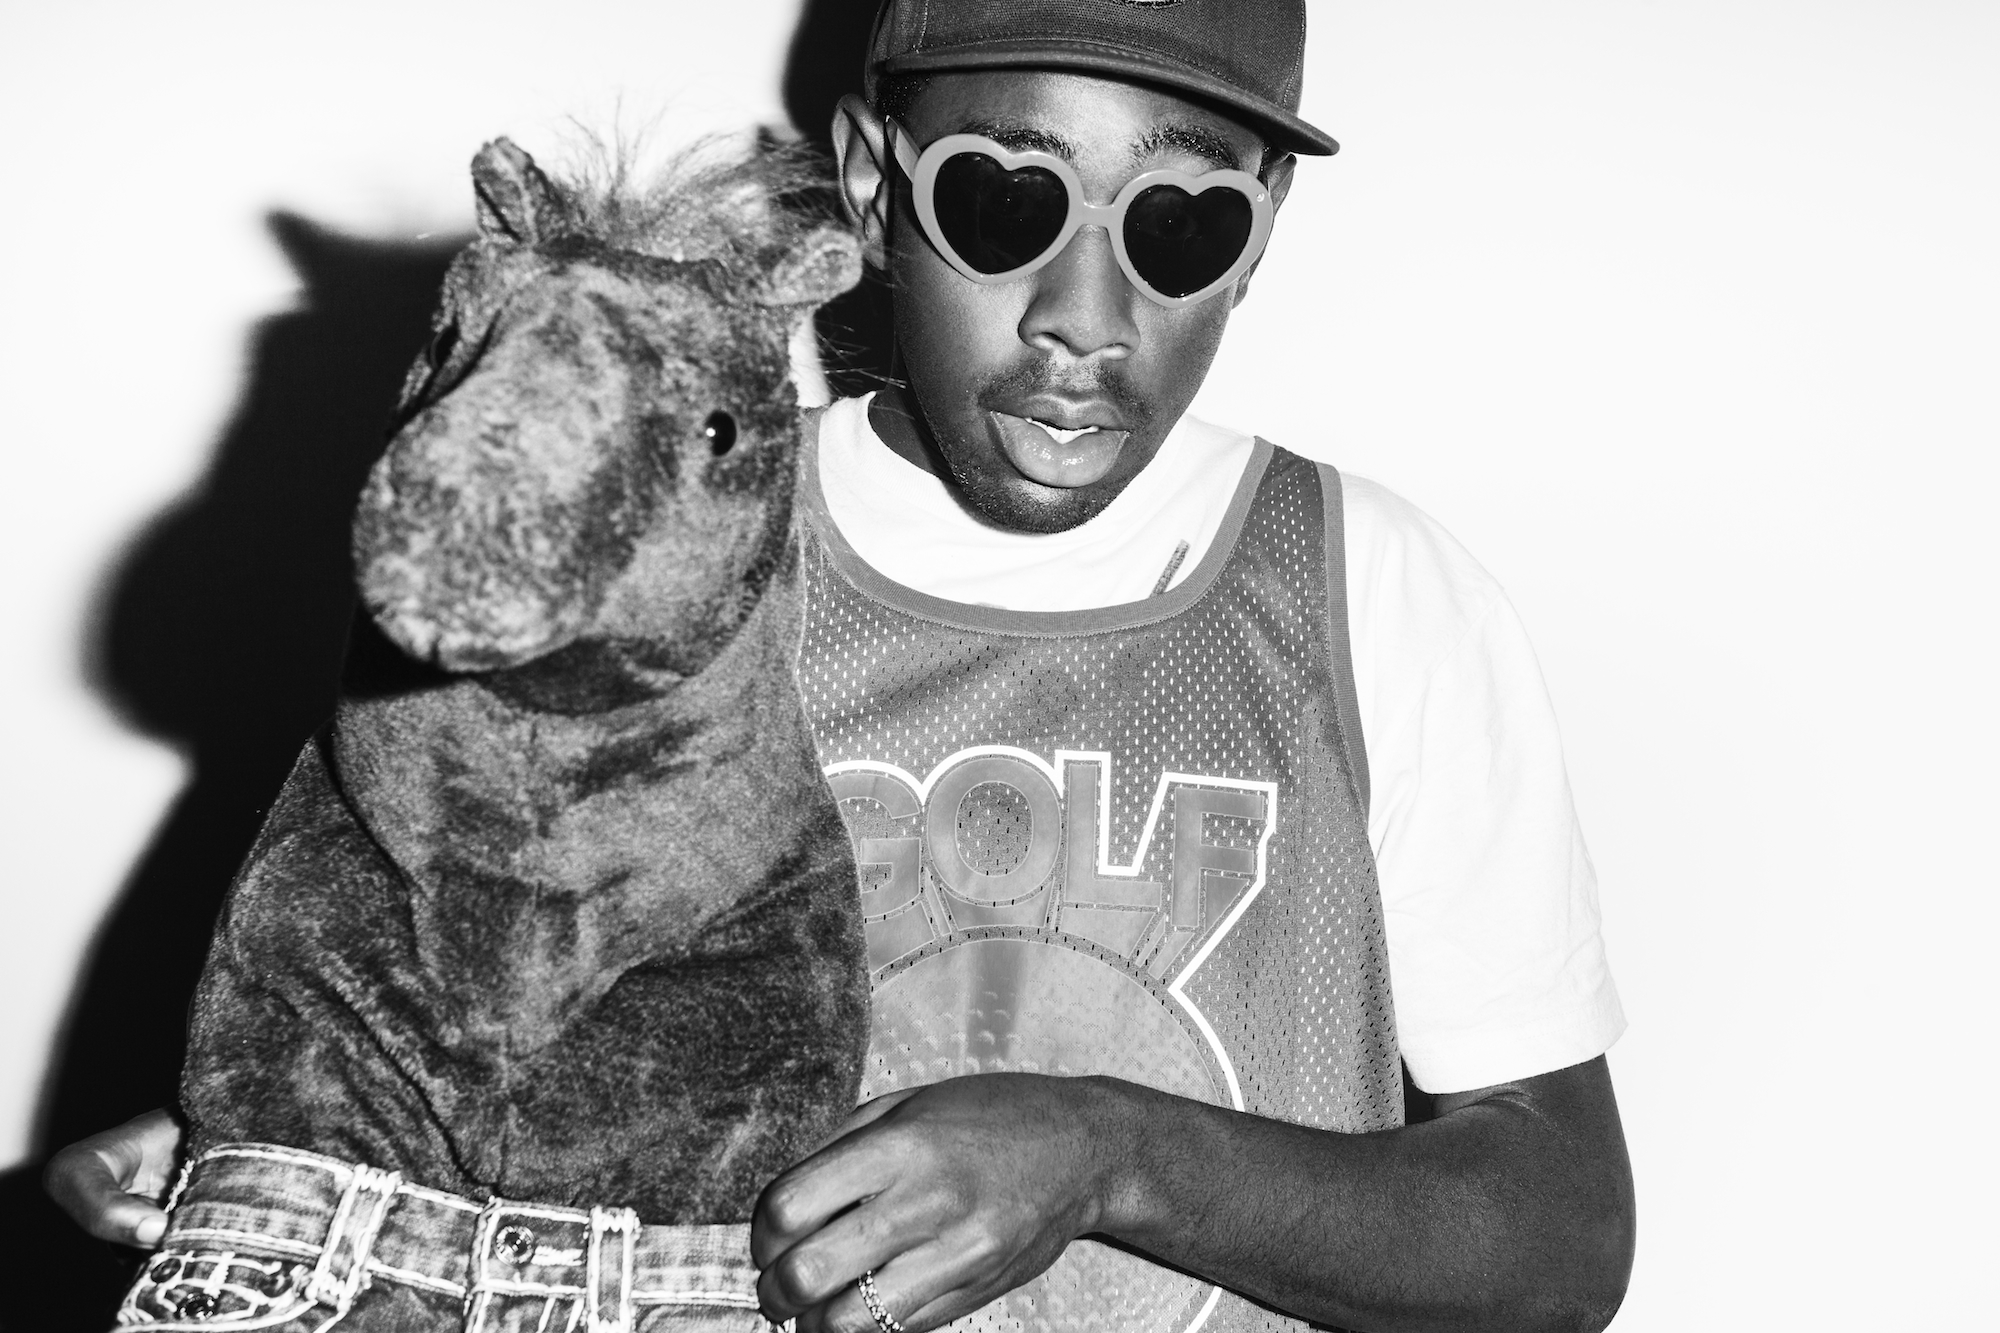 steven taylor photographs tyler the creator for nylon